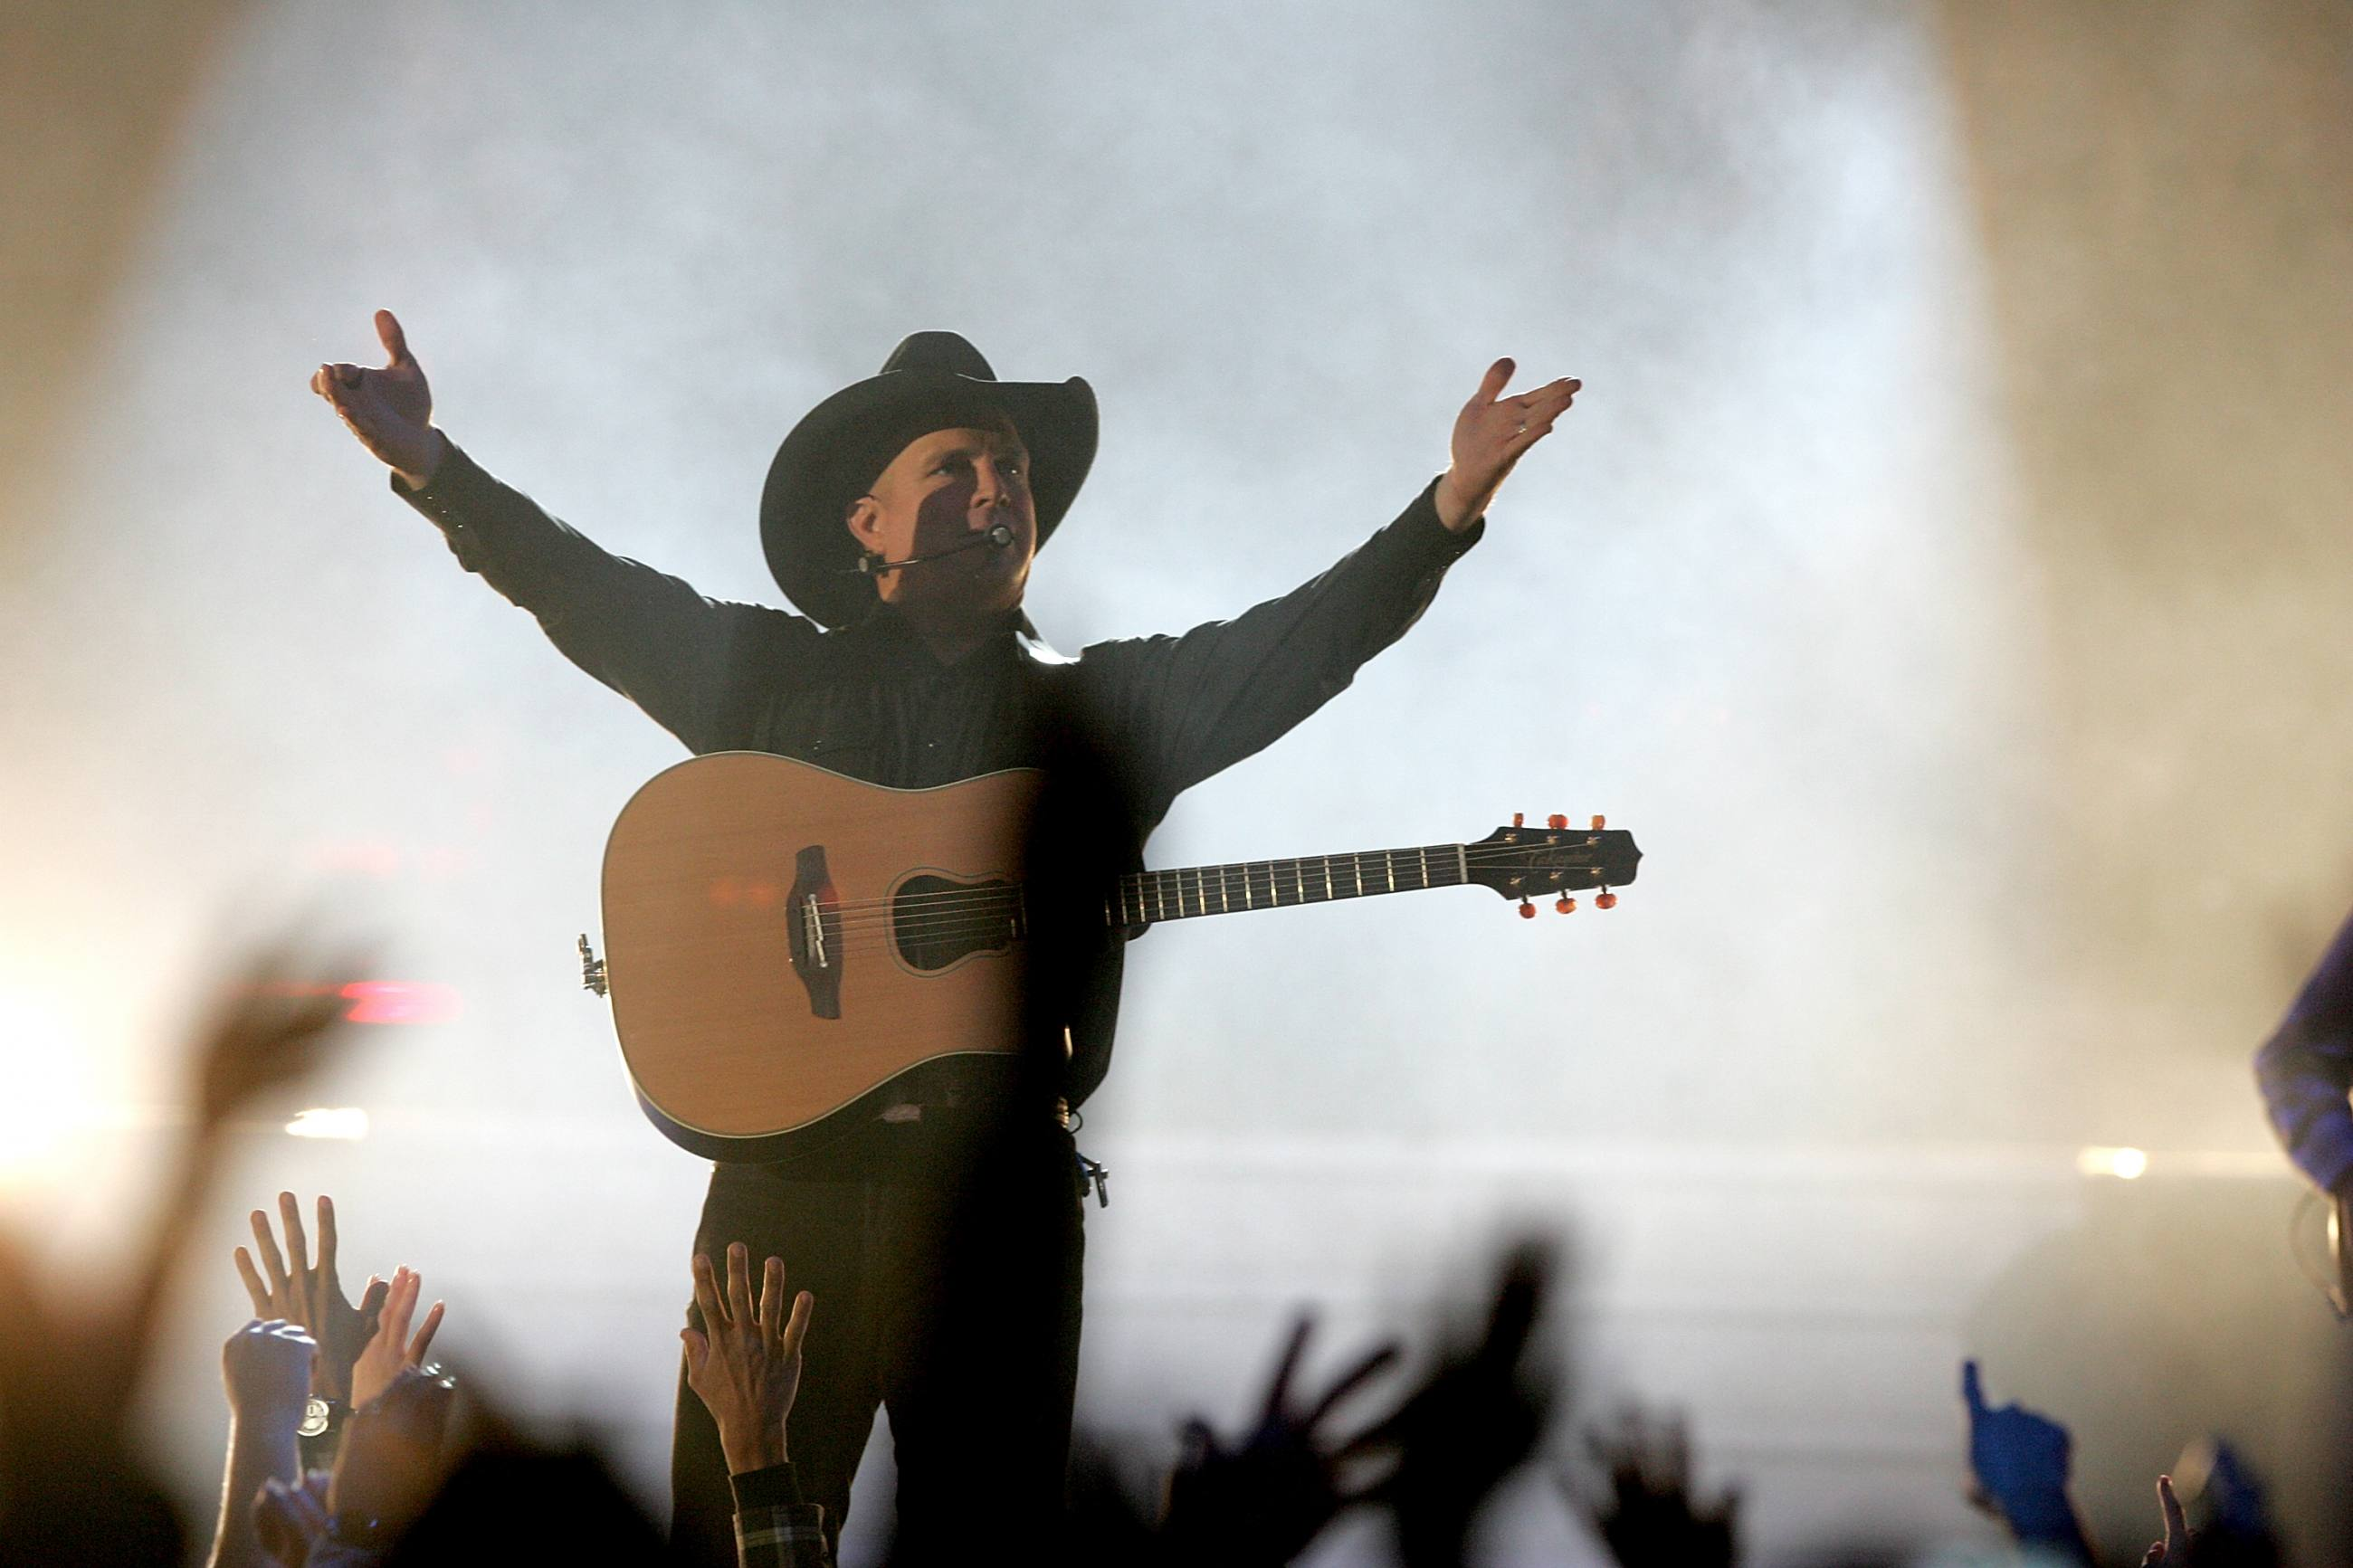 Garth Brooks on stage at STAPLES Center